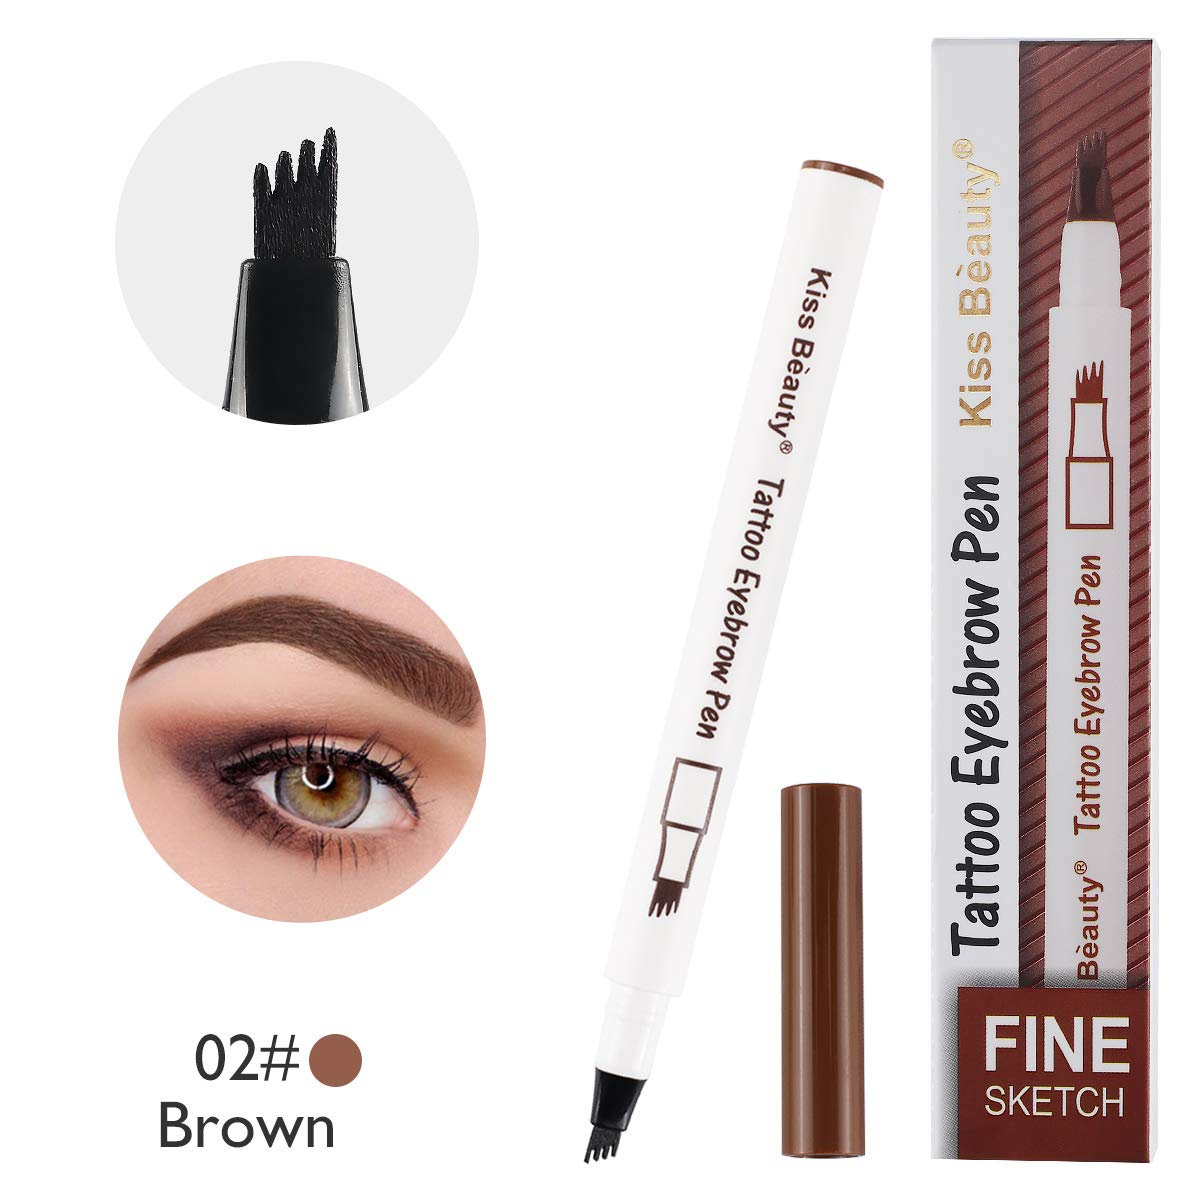 Tattoo Eyebrow Pen, Waterproof Liquid Eyebrow Pen with Four Tips, Long-Lasting Fine Sketch for Eyes Makeup (02#Brown) CRPUPER